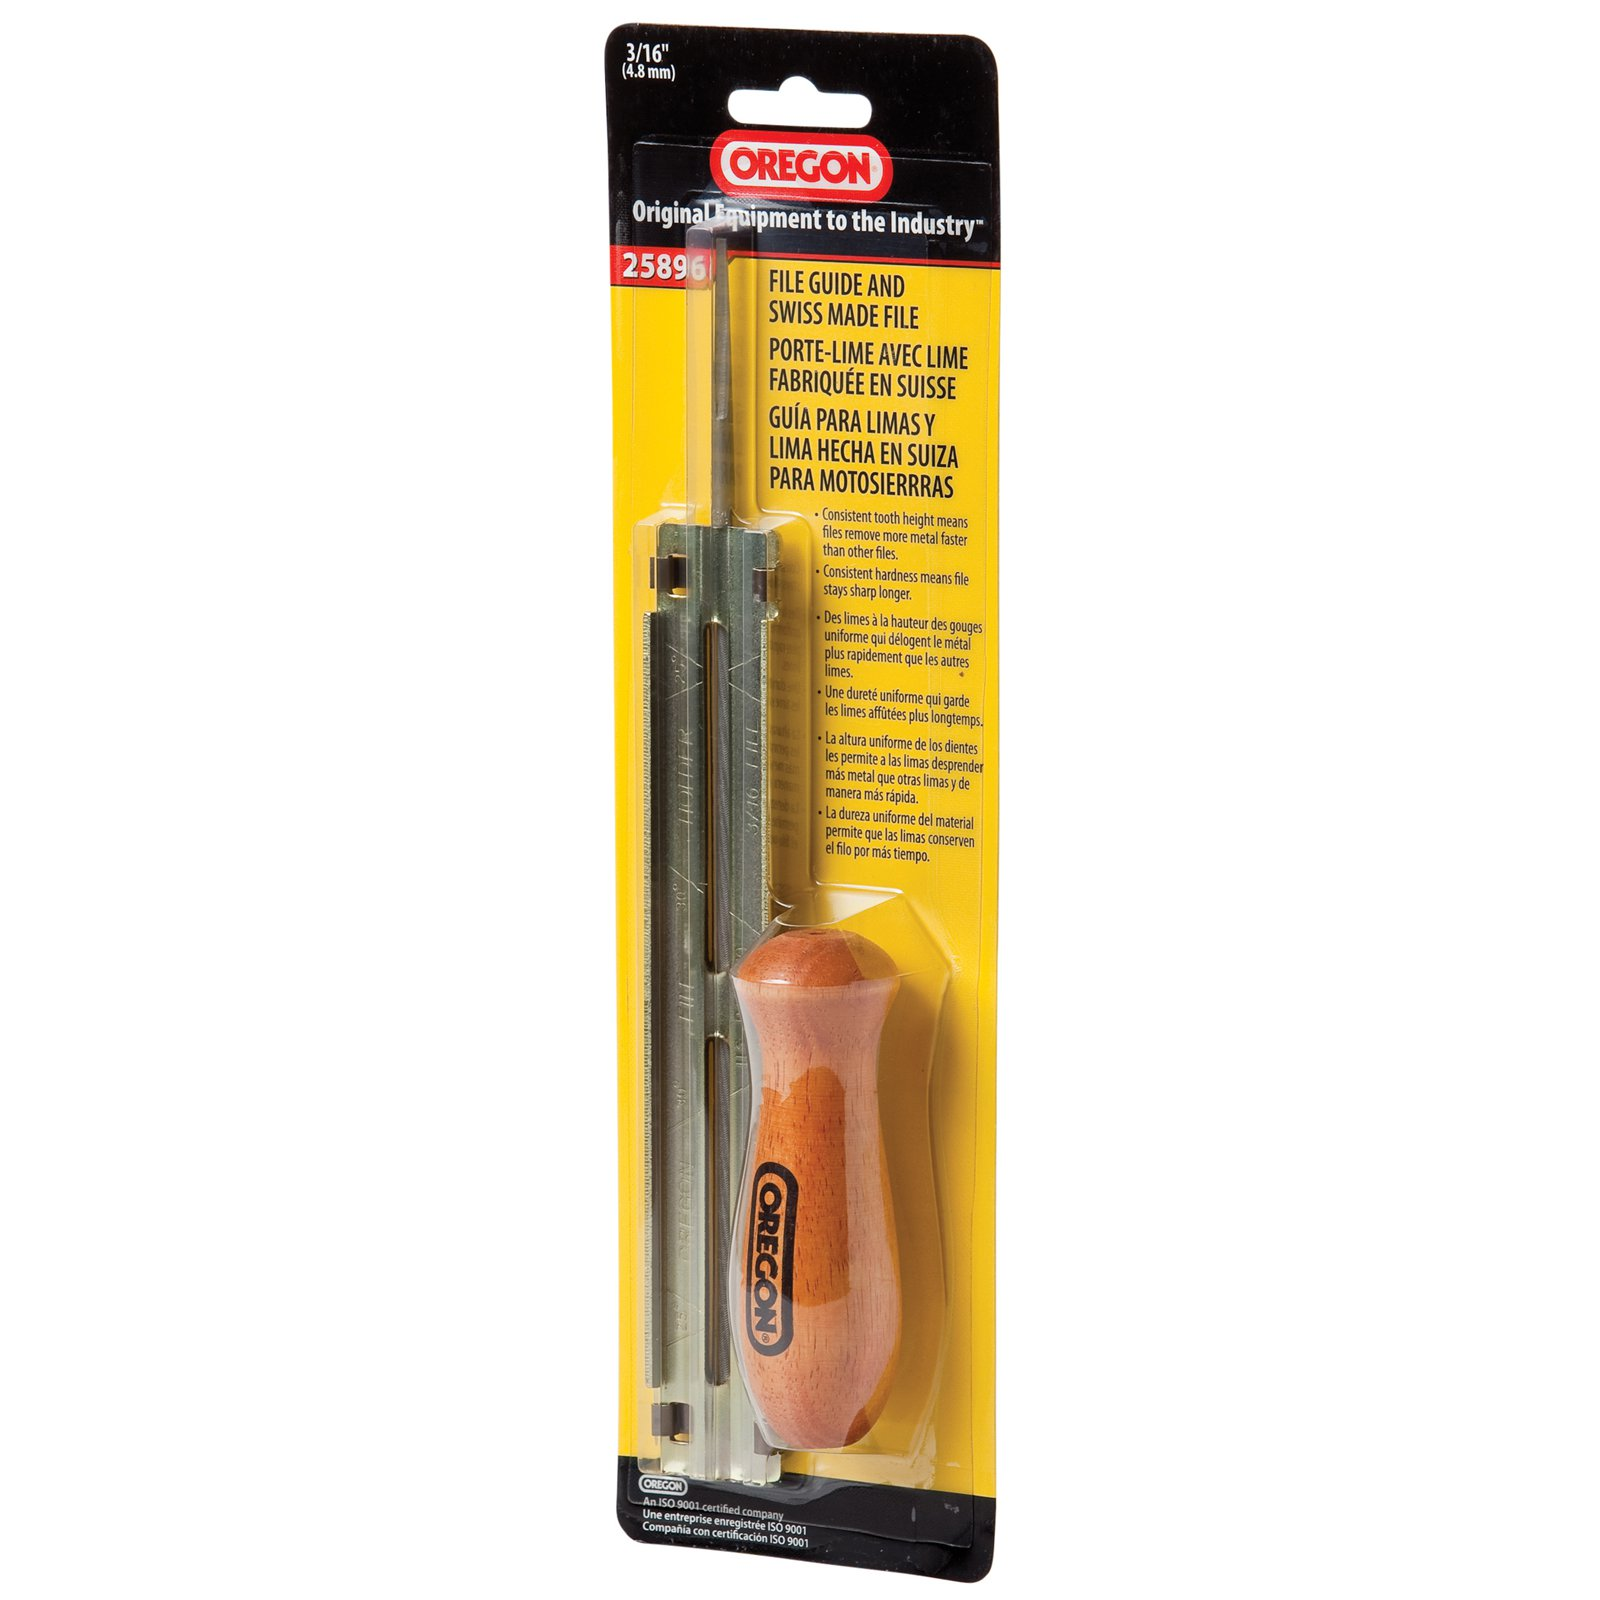 """Oregon Chain 25896 3/16"""" Chainsaw File Guide with Files"""